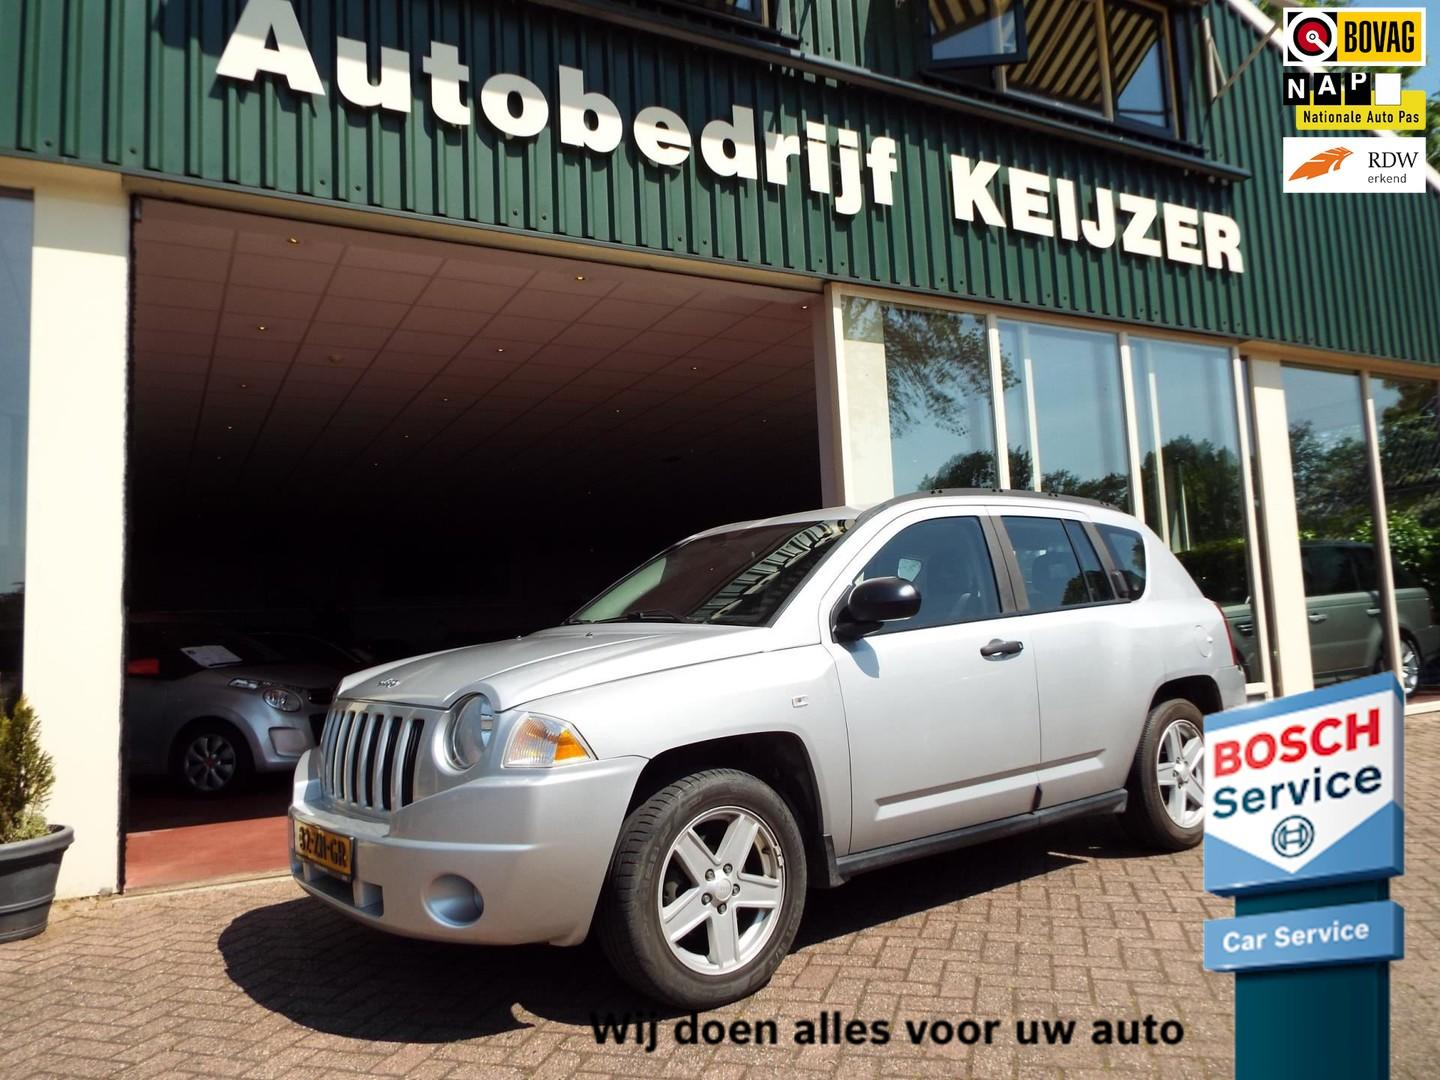 Jeep Compass 2.0 crd limited cruise-airco-4x4-nap-bovag